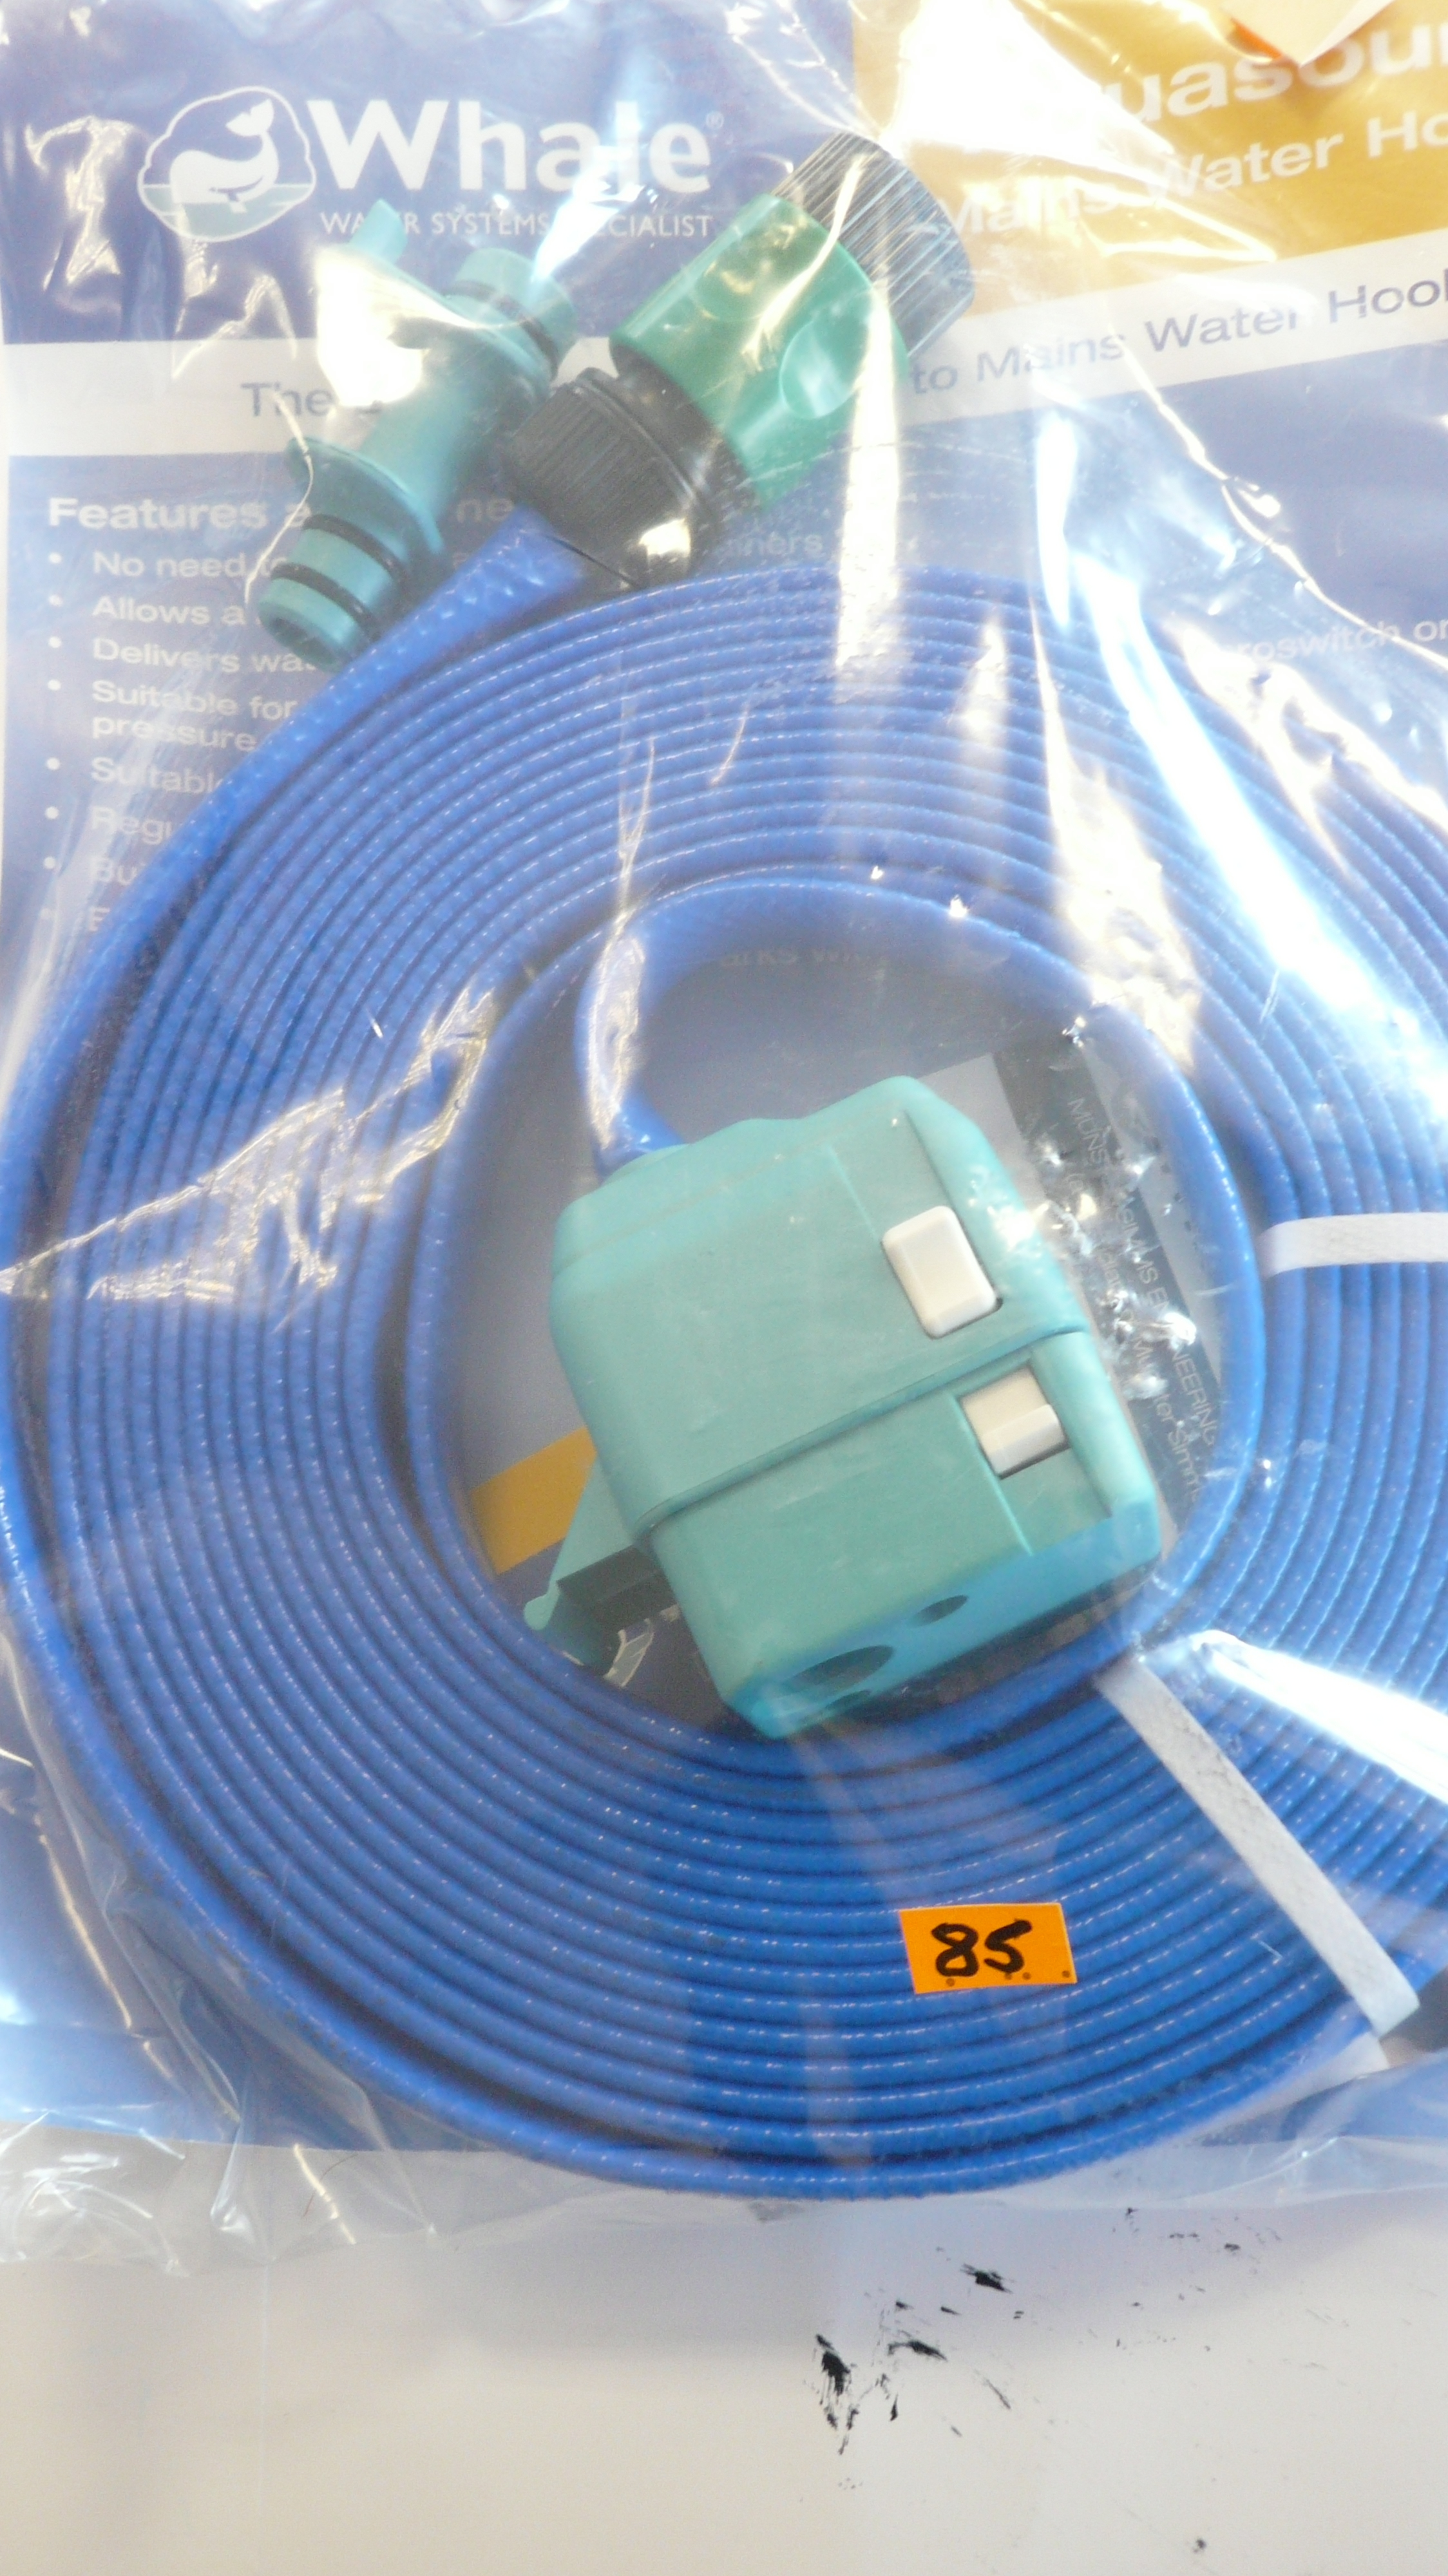 Whale Aquasource Mains water Hook-up